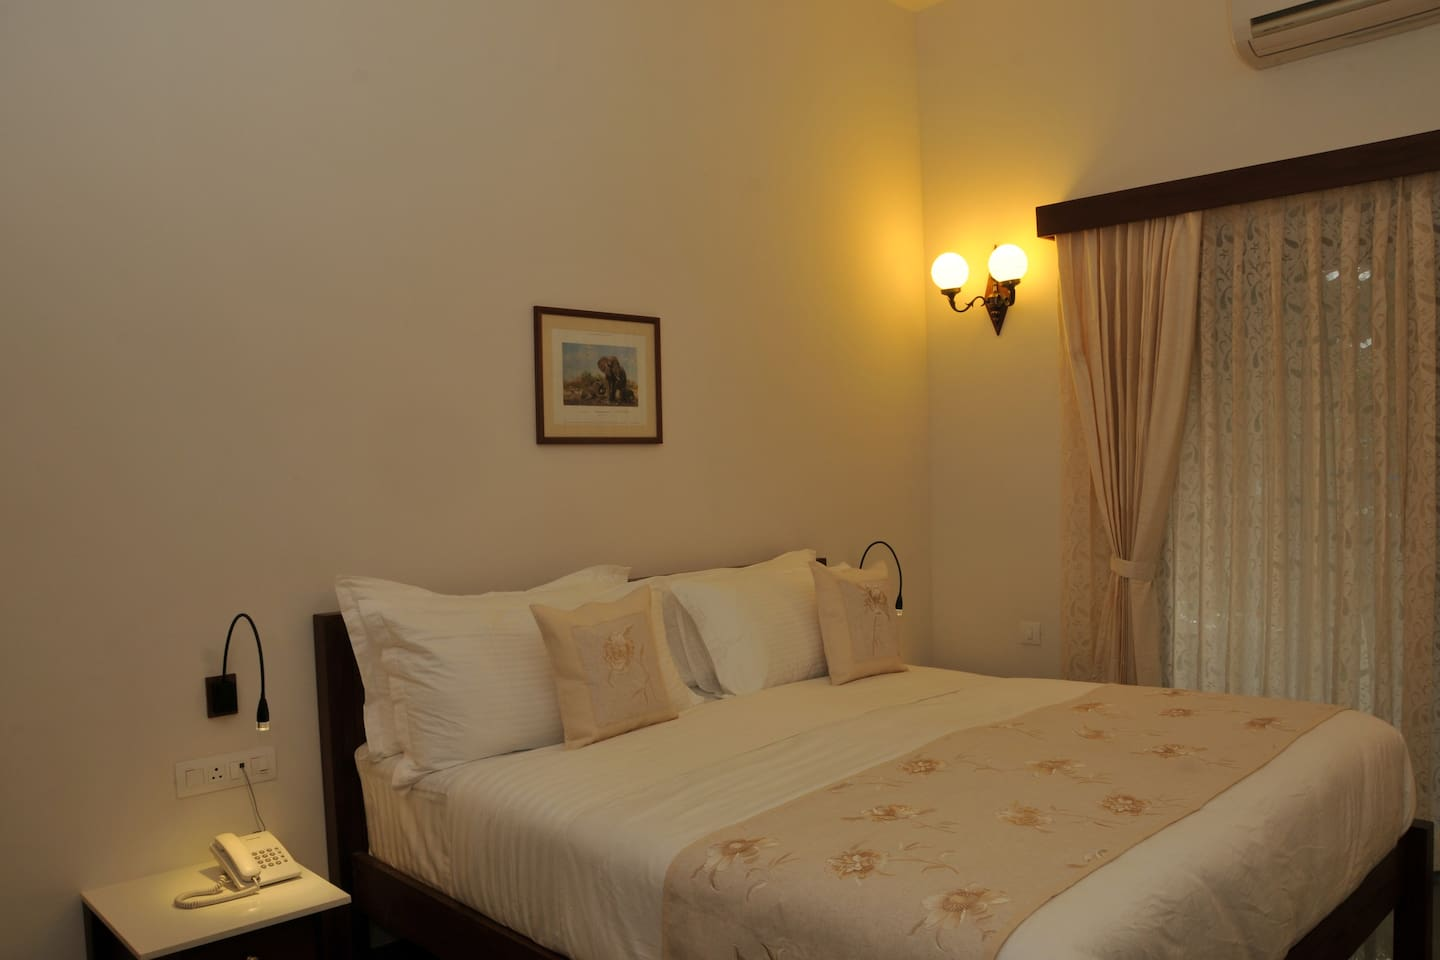 LUXURIOUS DELUXE ROOM with attached bathroom,Flat TV,DVD player,tea/coffee maker,large dressing mirror,Air-conditioner and wi-fi active.